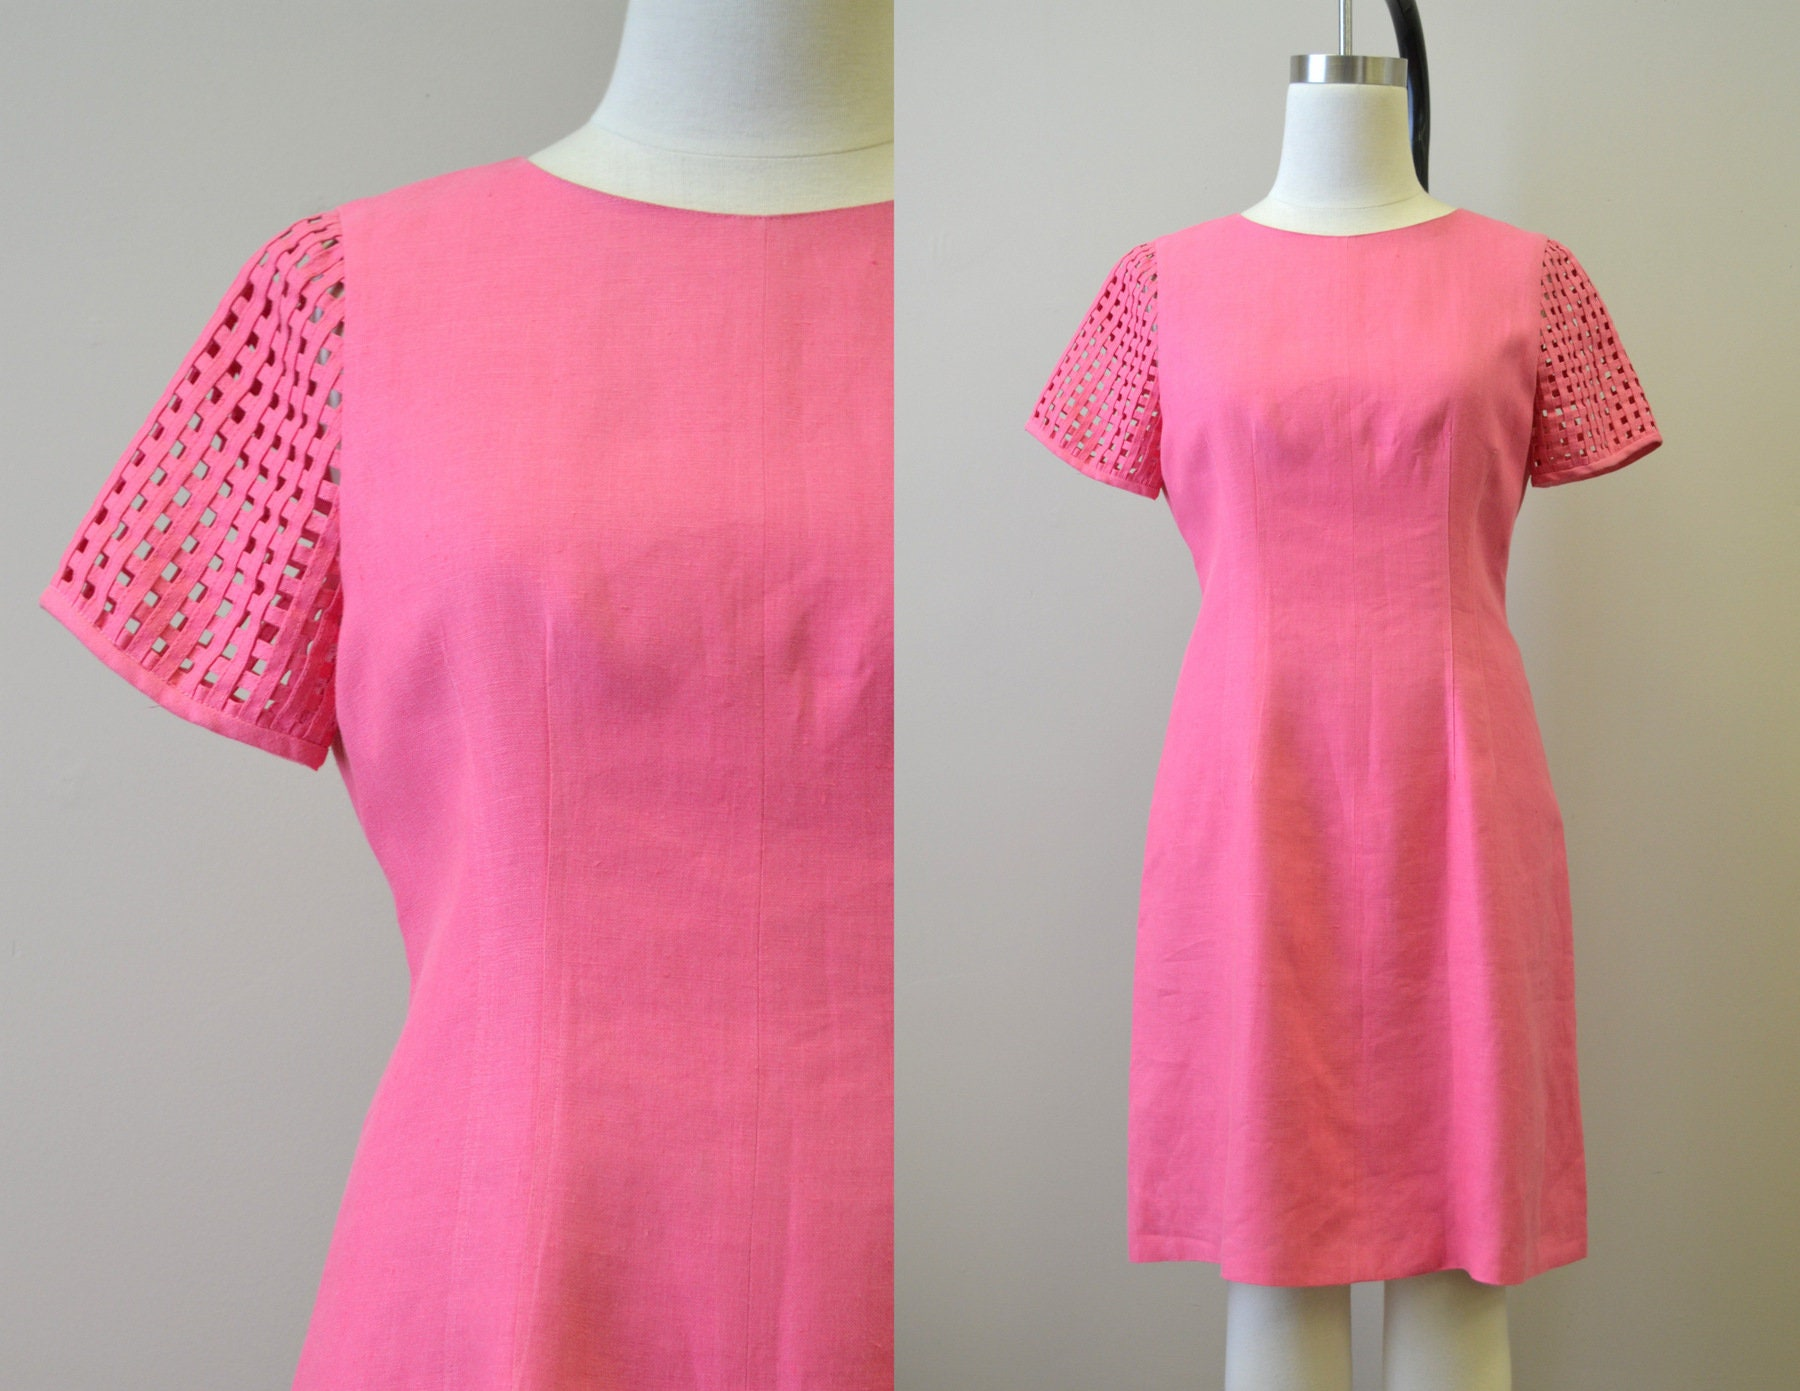 80s Dresses | Casual to Party Dresses 1980S Chetta B Pink Linen Dress With Cage Sleeves $48.00 AT vintagedancer.com